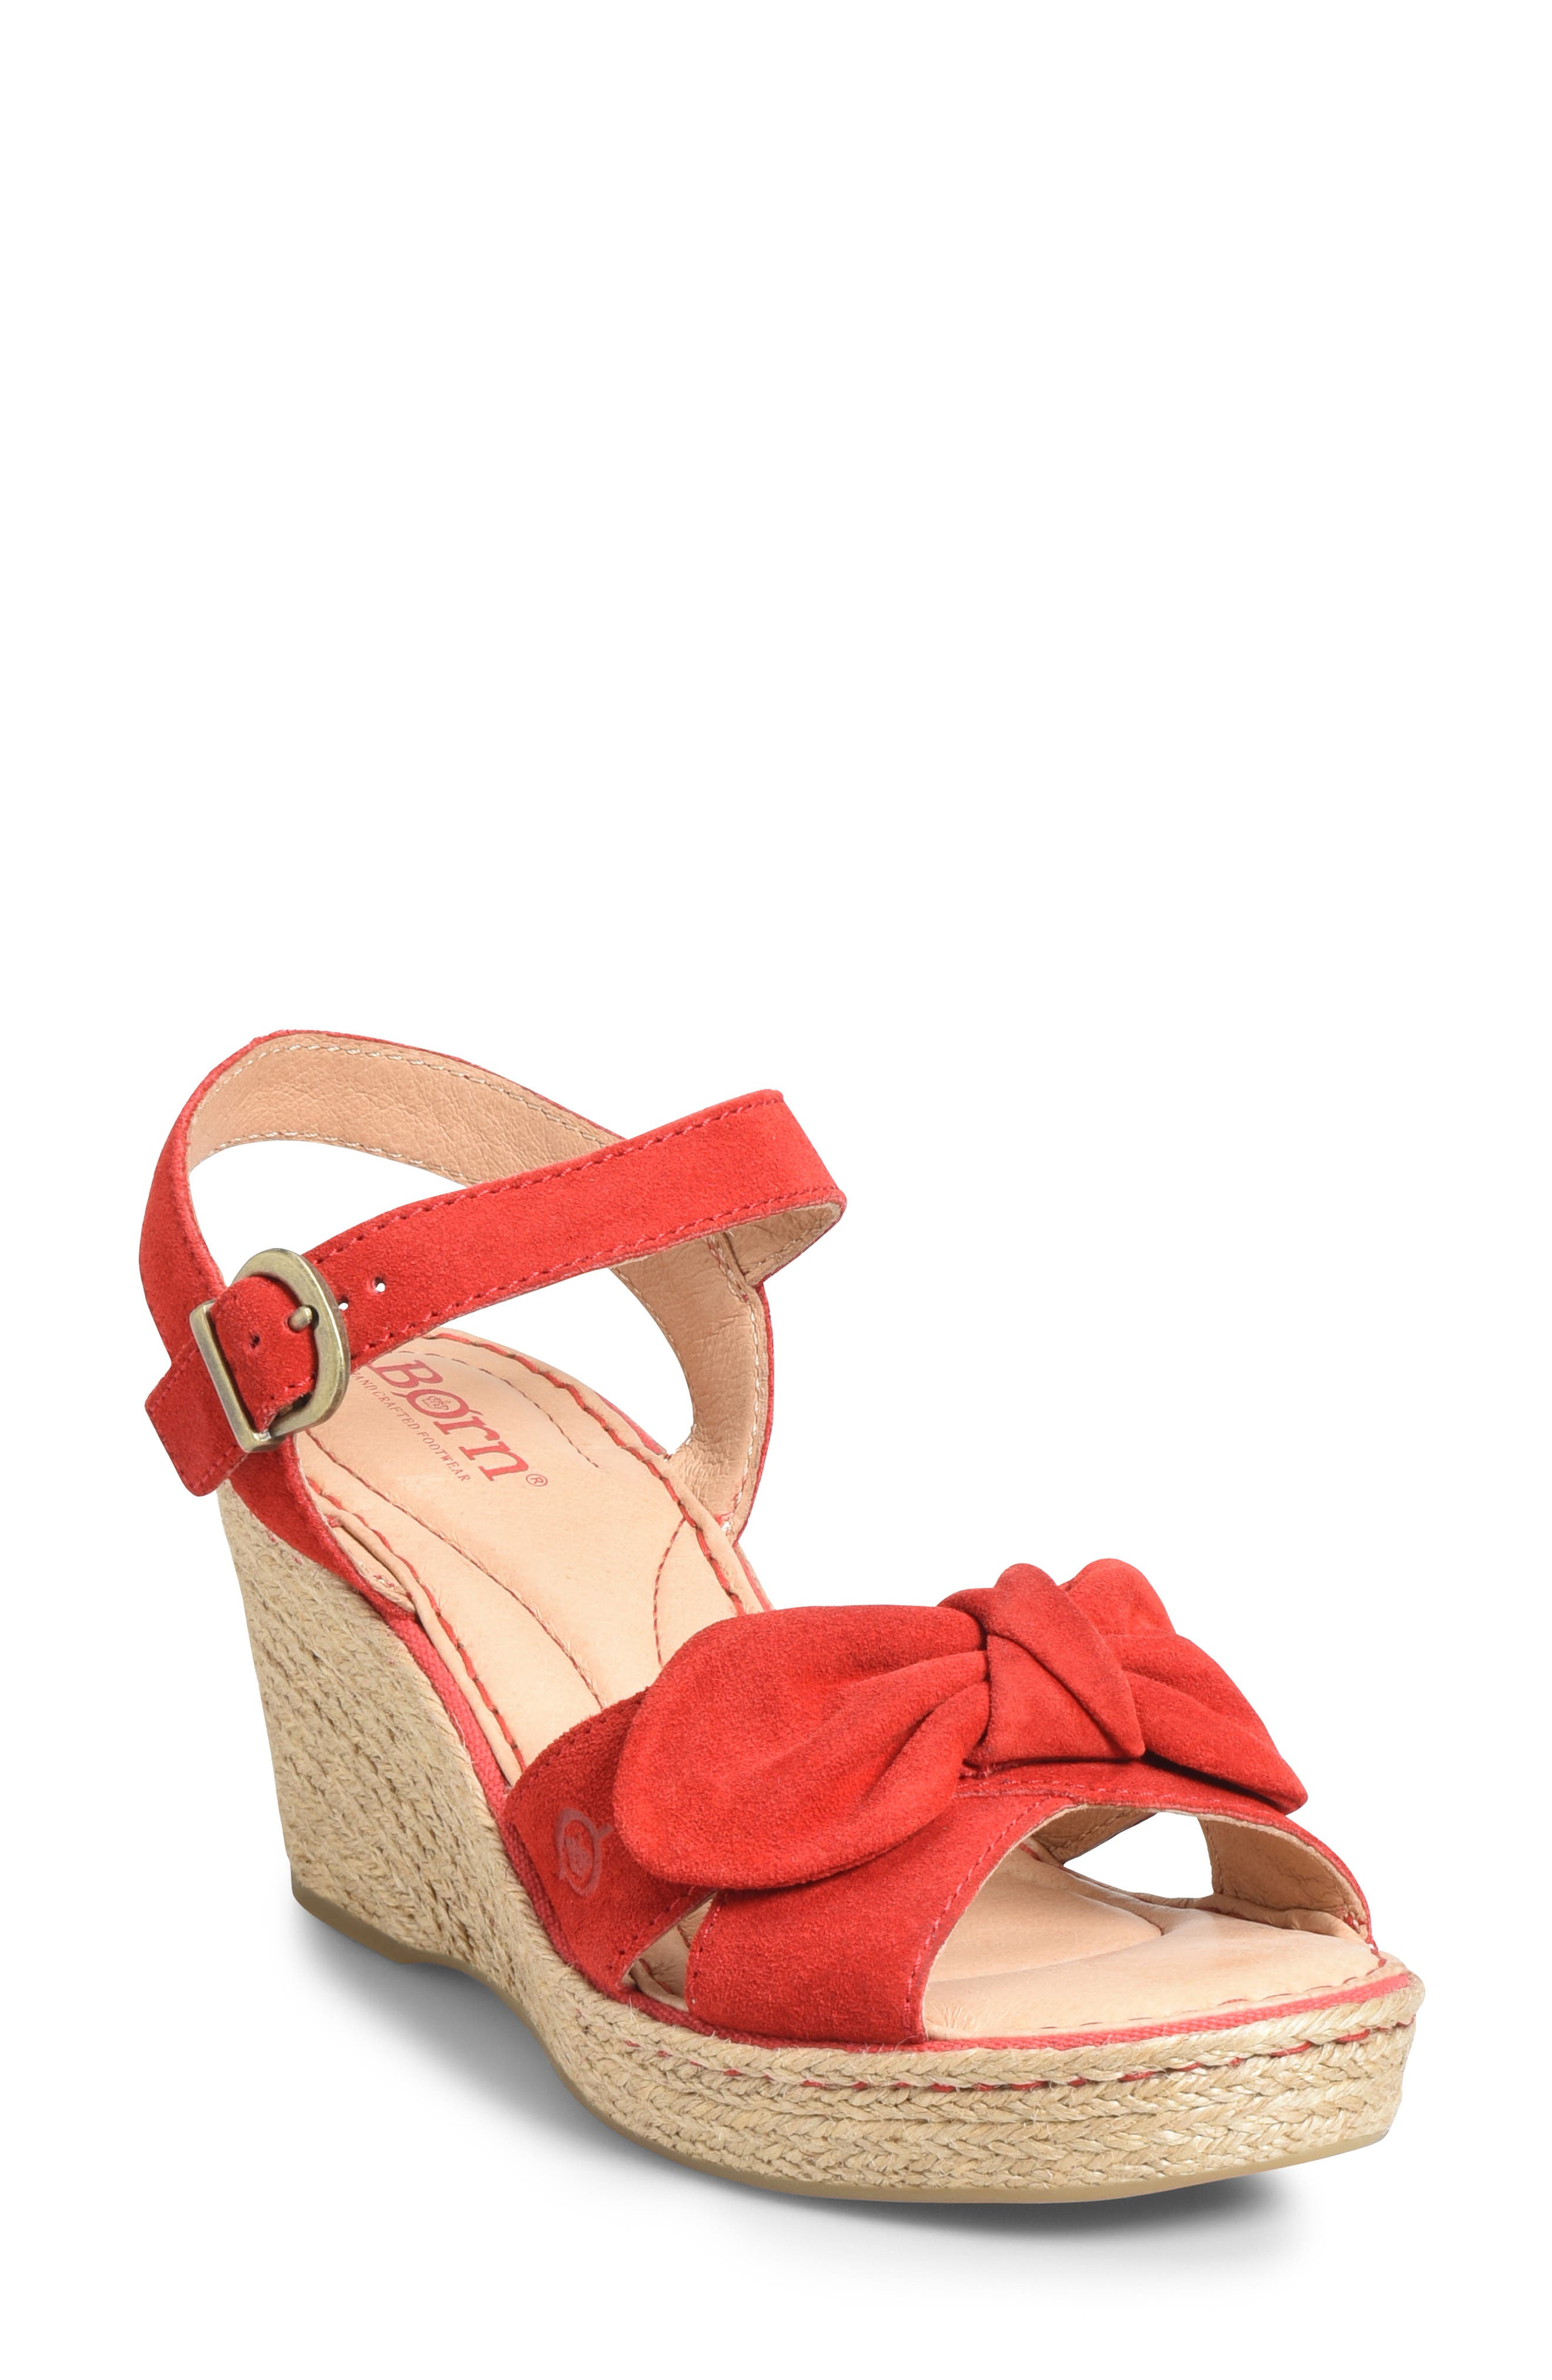 B?rn Monticello Knotted Wedge Sandal, Red